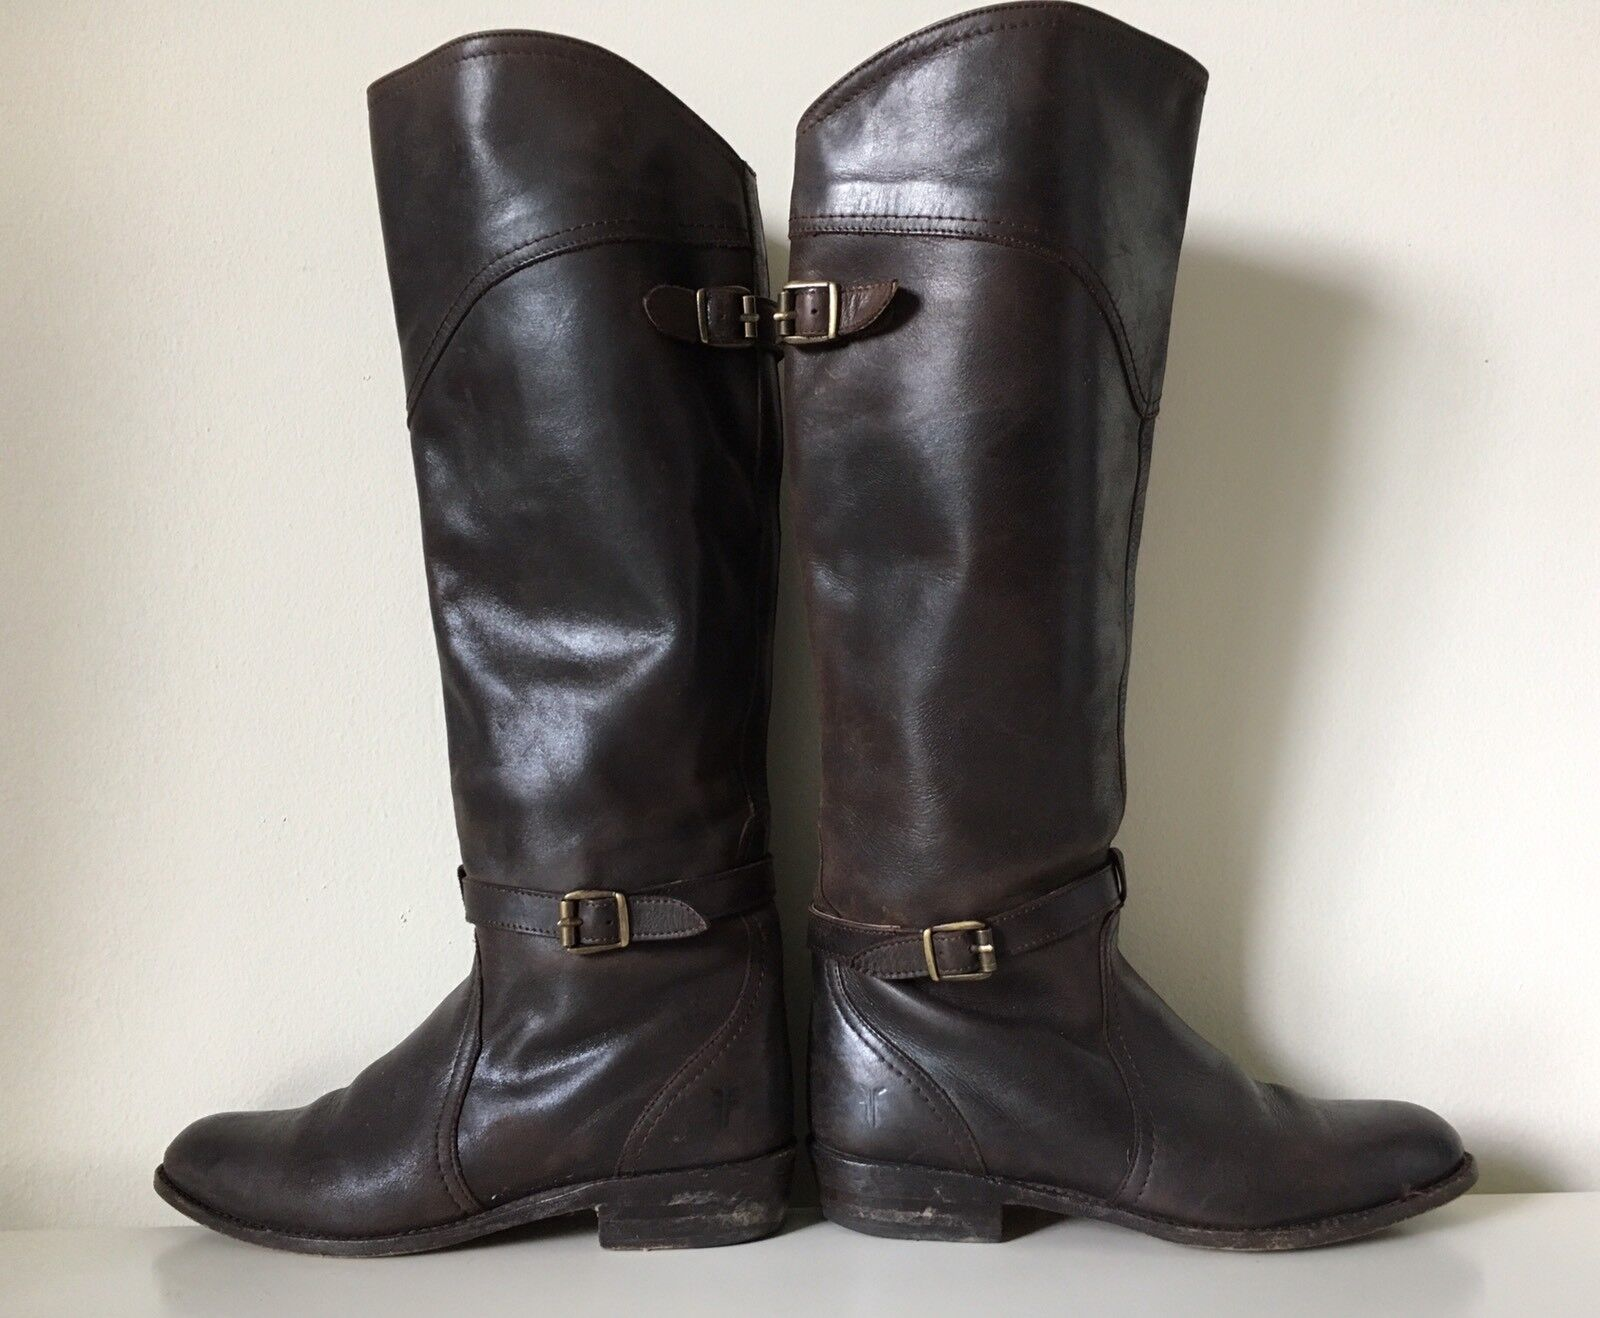 498 FRYE Dorado Braun Leder Buckle Motorcycle Knee High Tall Riding Boot Sz 6